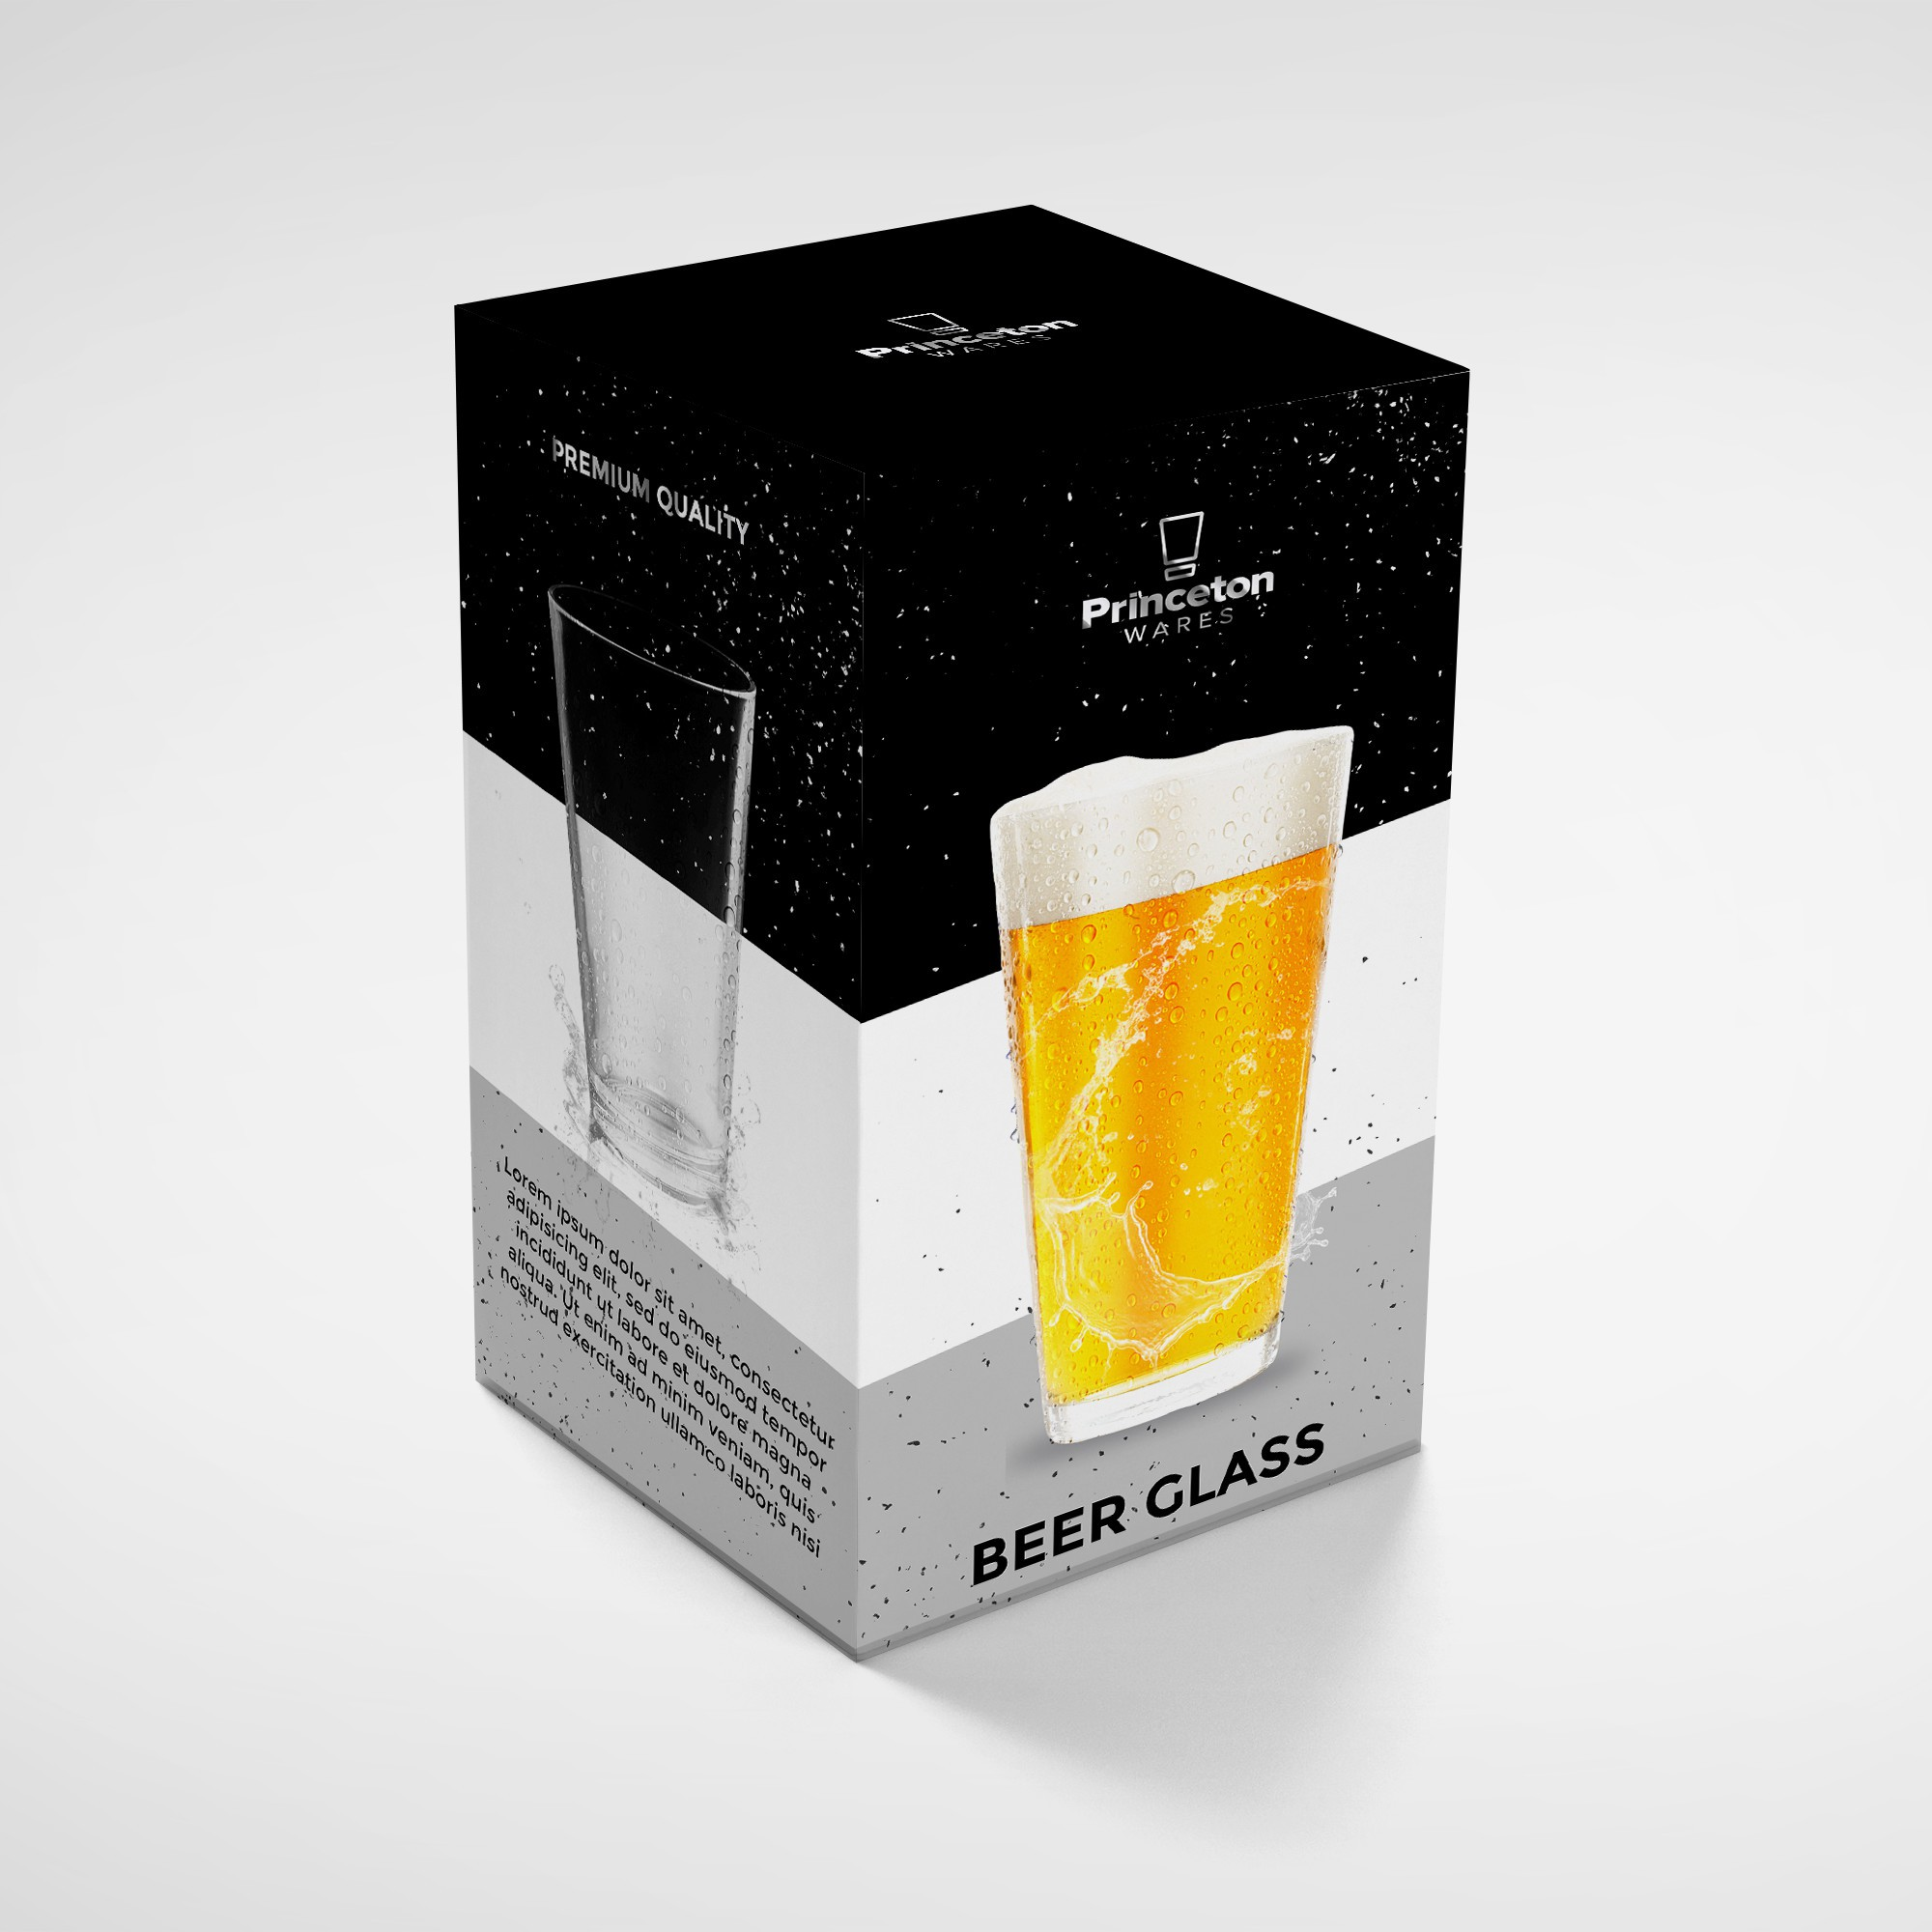 Package for Beer Glass